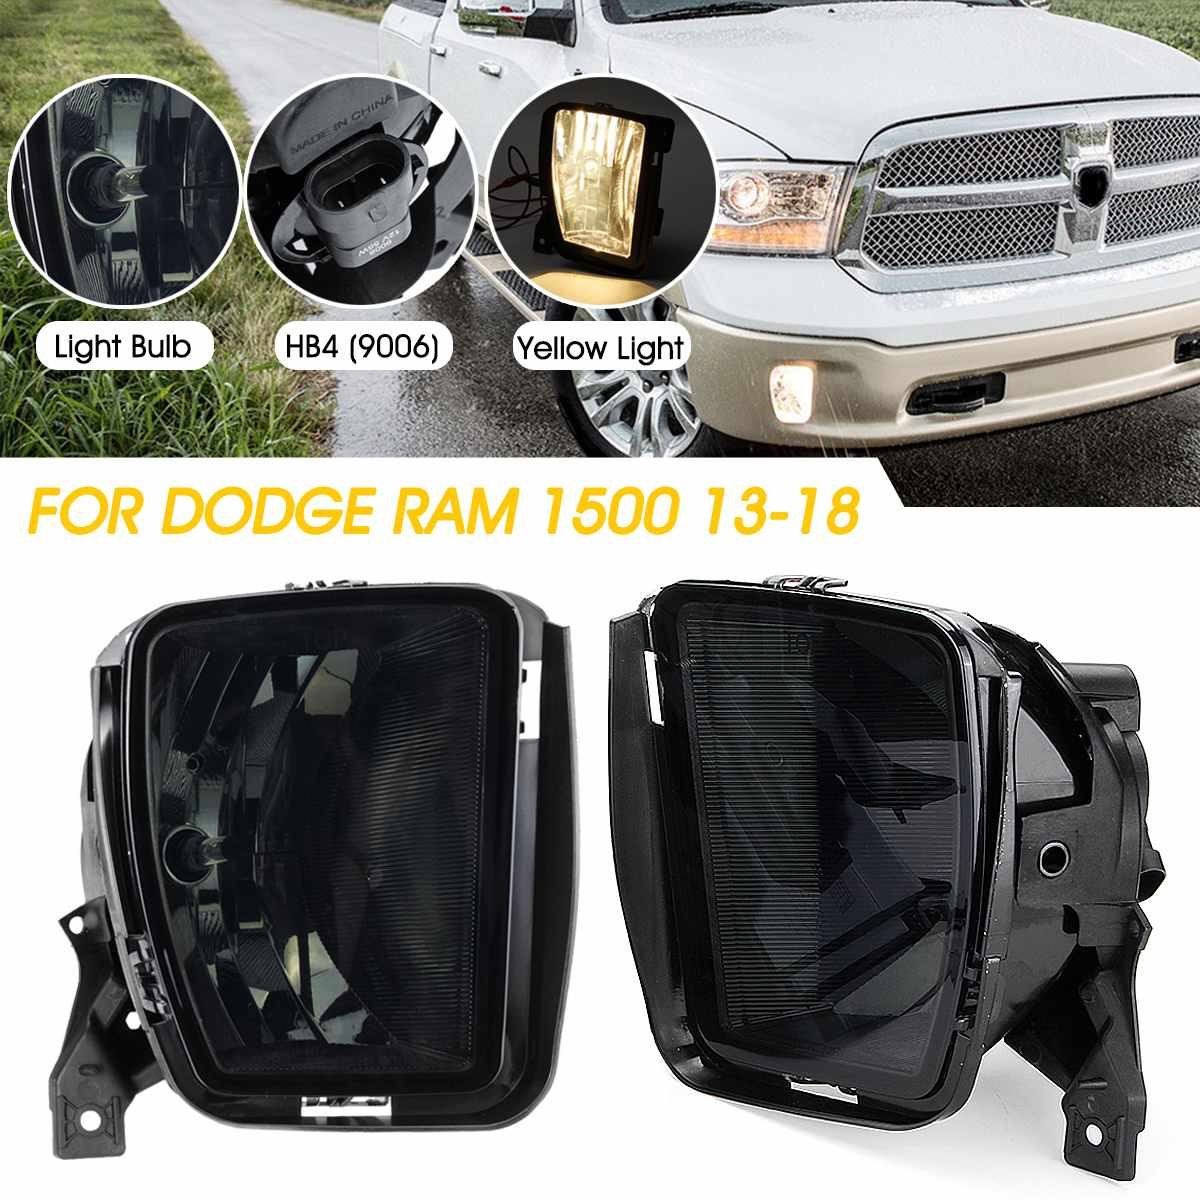 2PCS Car Front Bumper Fog Halogen Lights Fog Light With Bulbs For Dodge RAM 1500 2013 2014 2015 2016 2017 2018